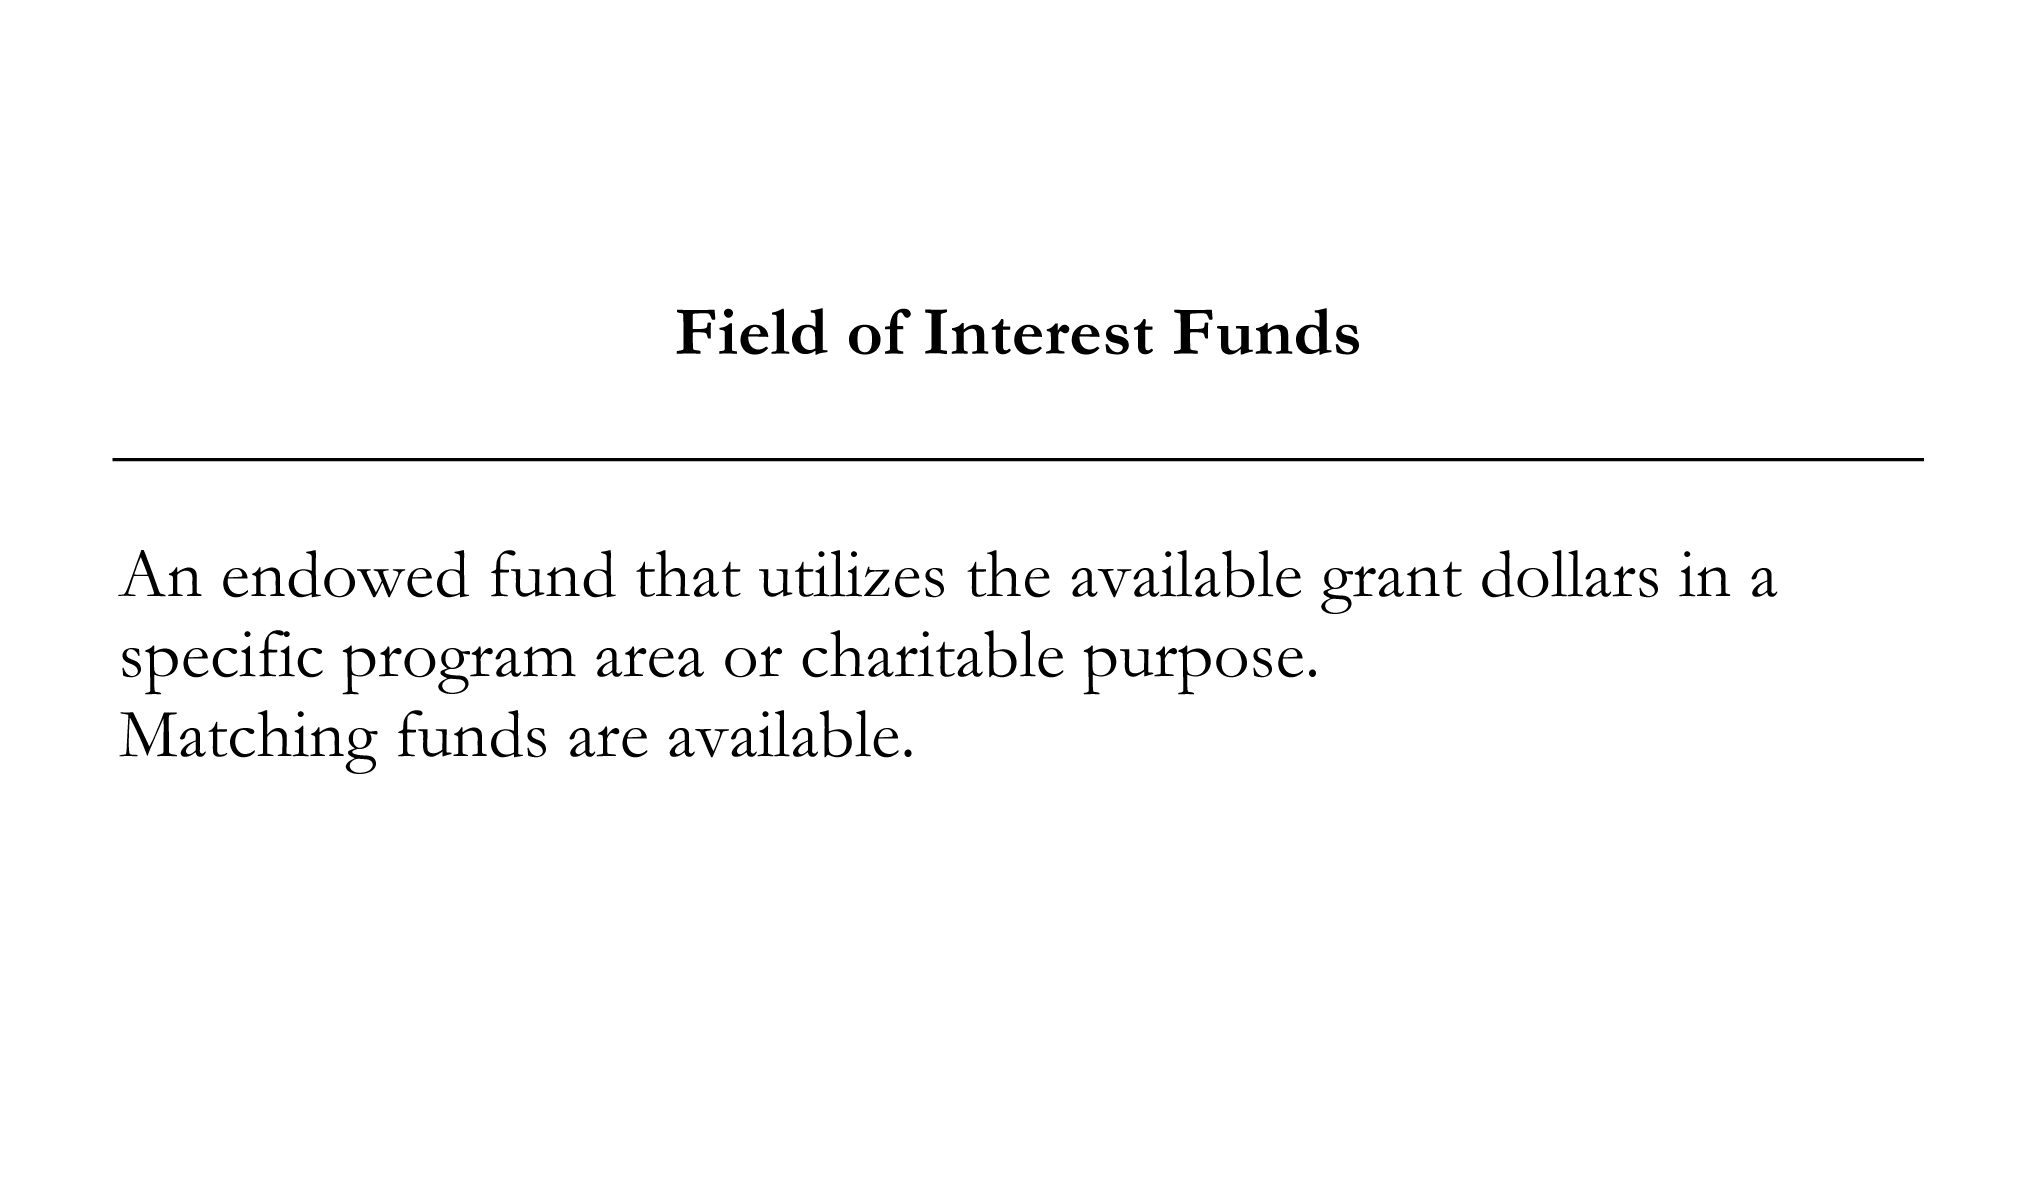 Field of Interest Funds.png